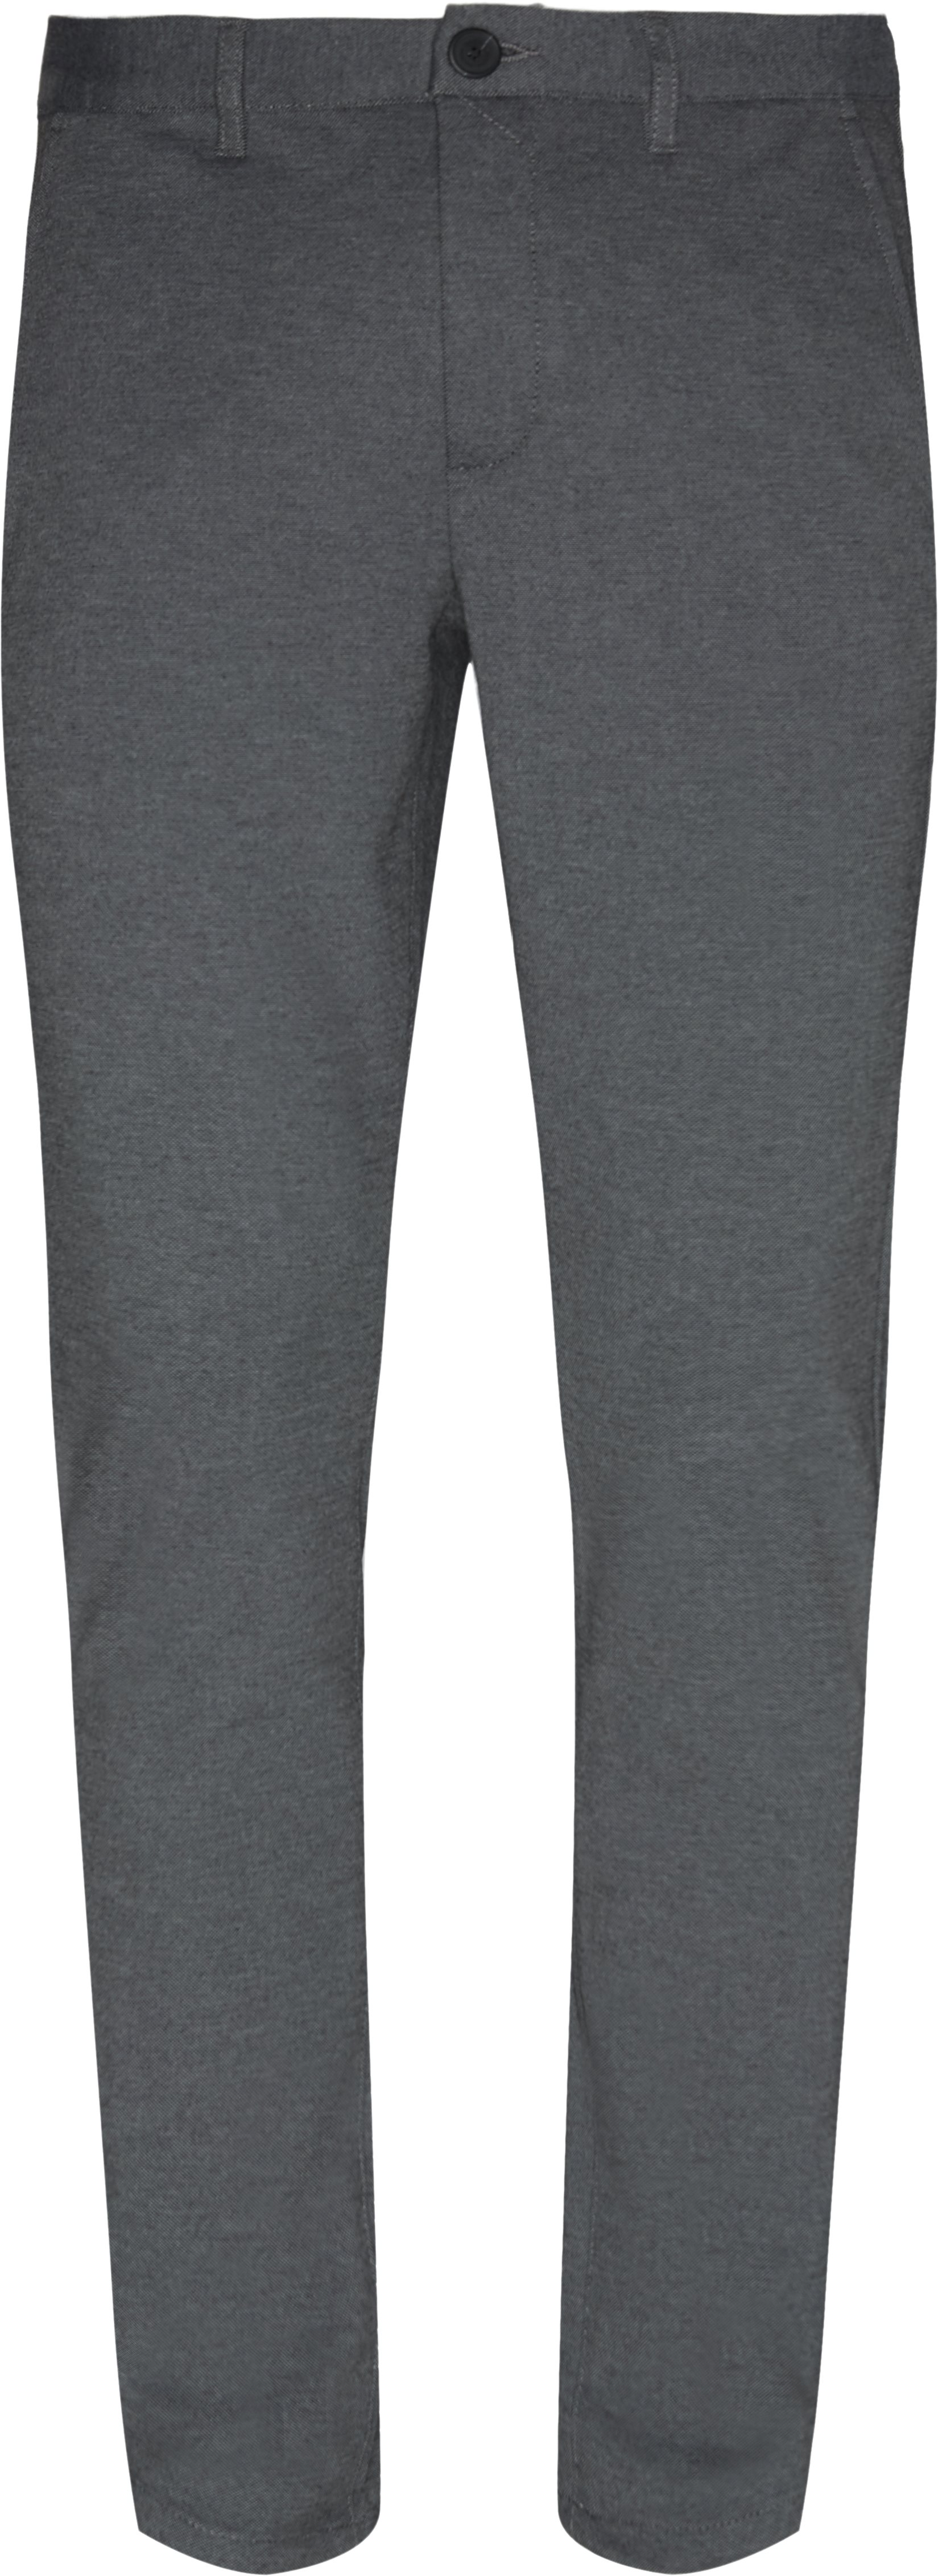 Joker Pant - Bukser - Tapered fit - Grå